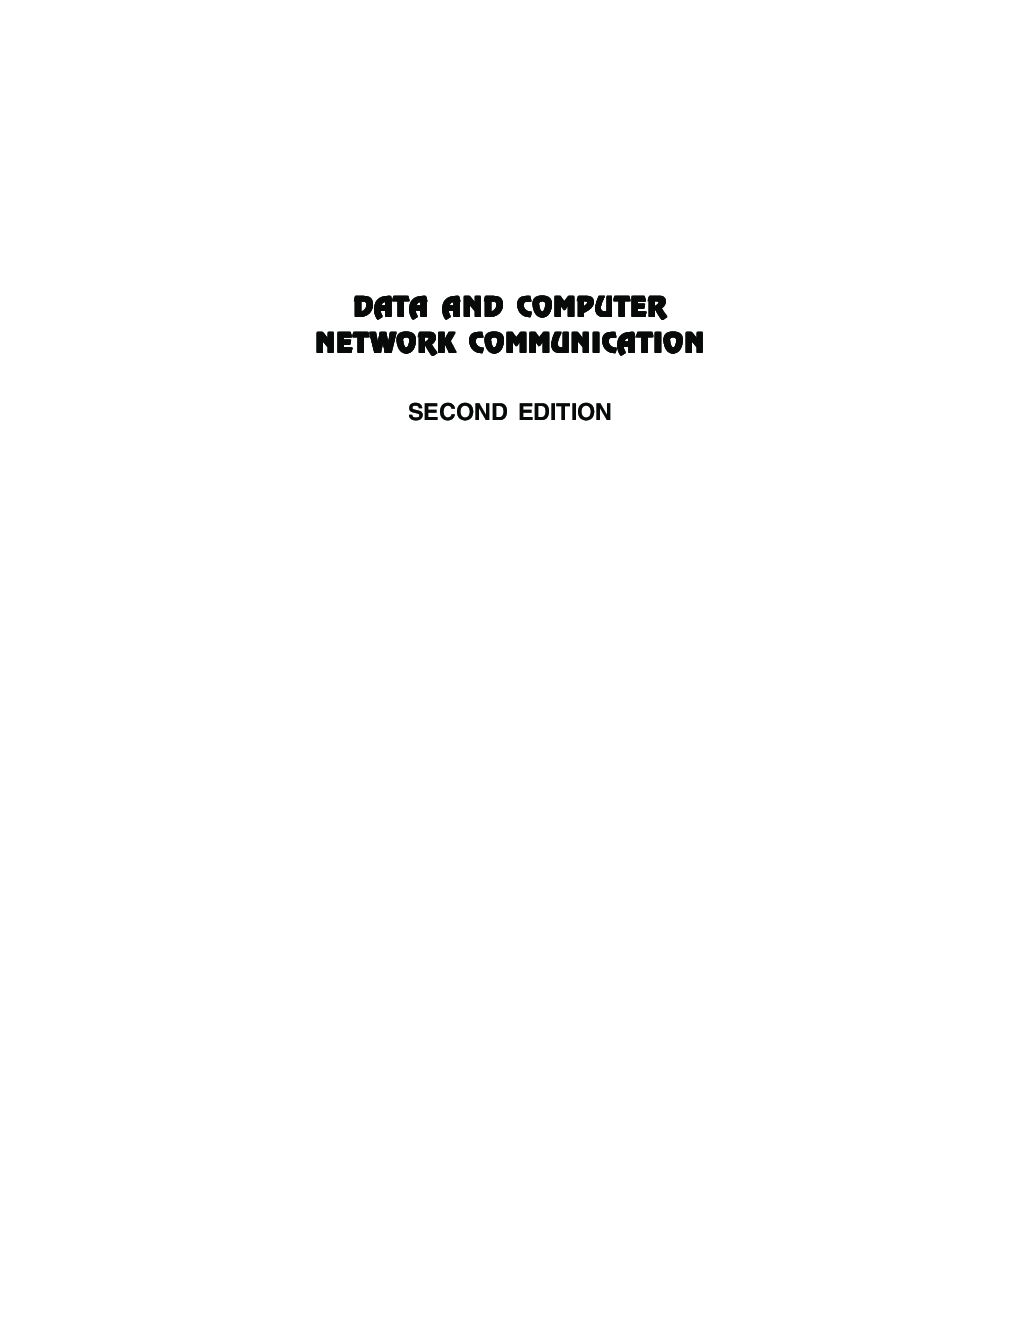 Data And Computer Network Communication - Page 2